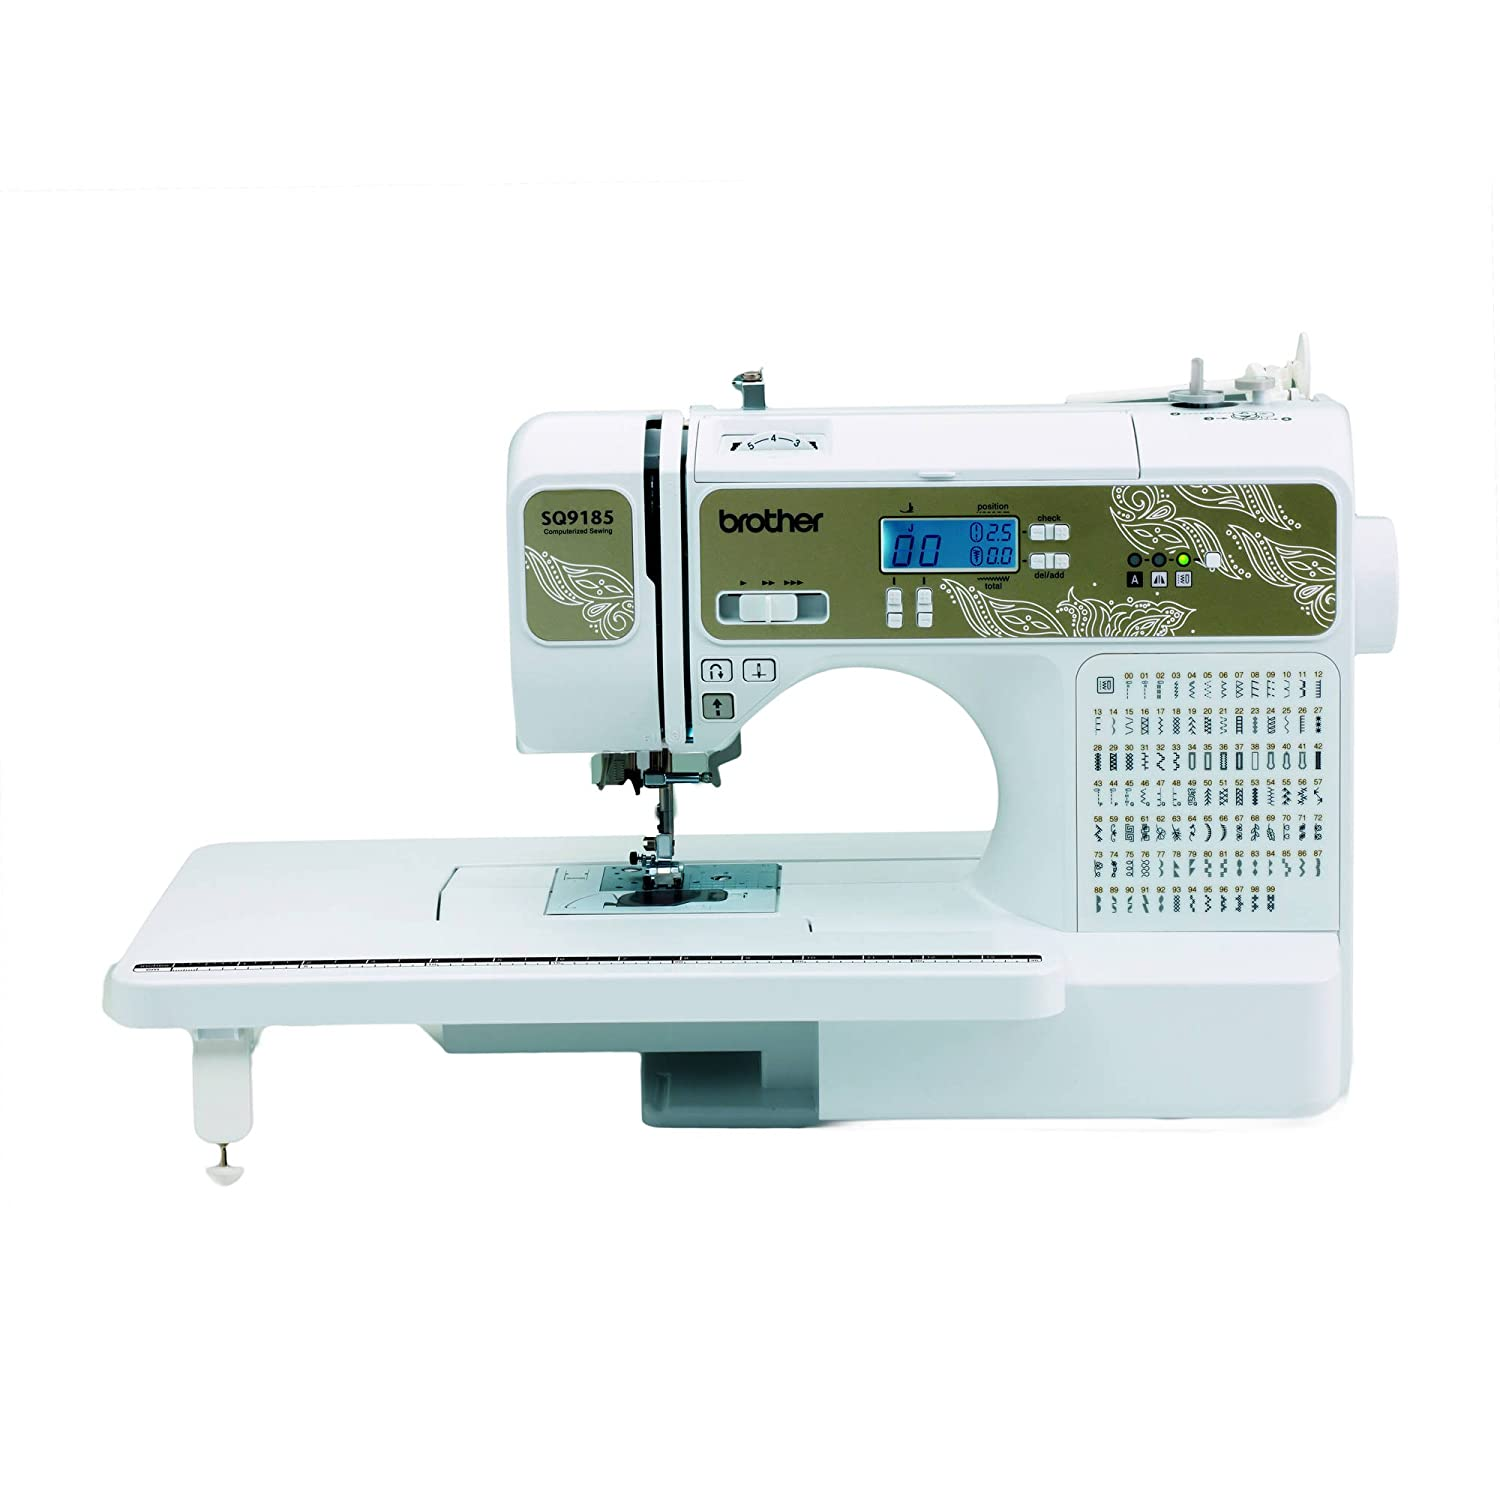 the quilt sewing longarm machines down sit aqsd quilting products artistic quilter new